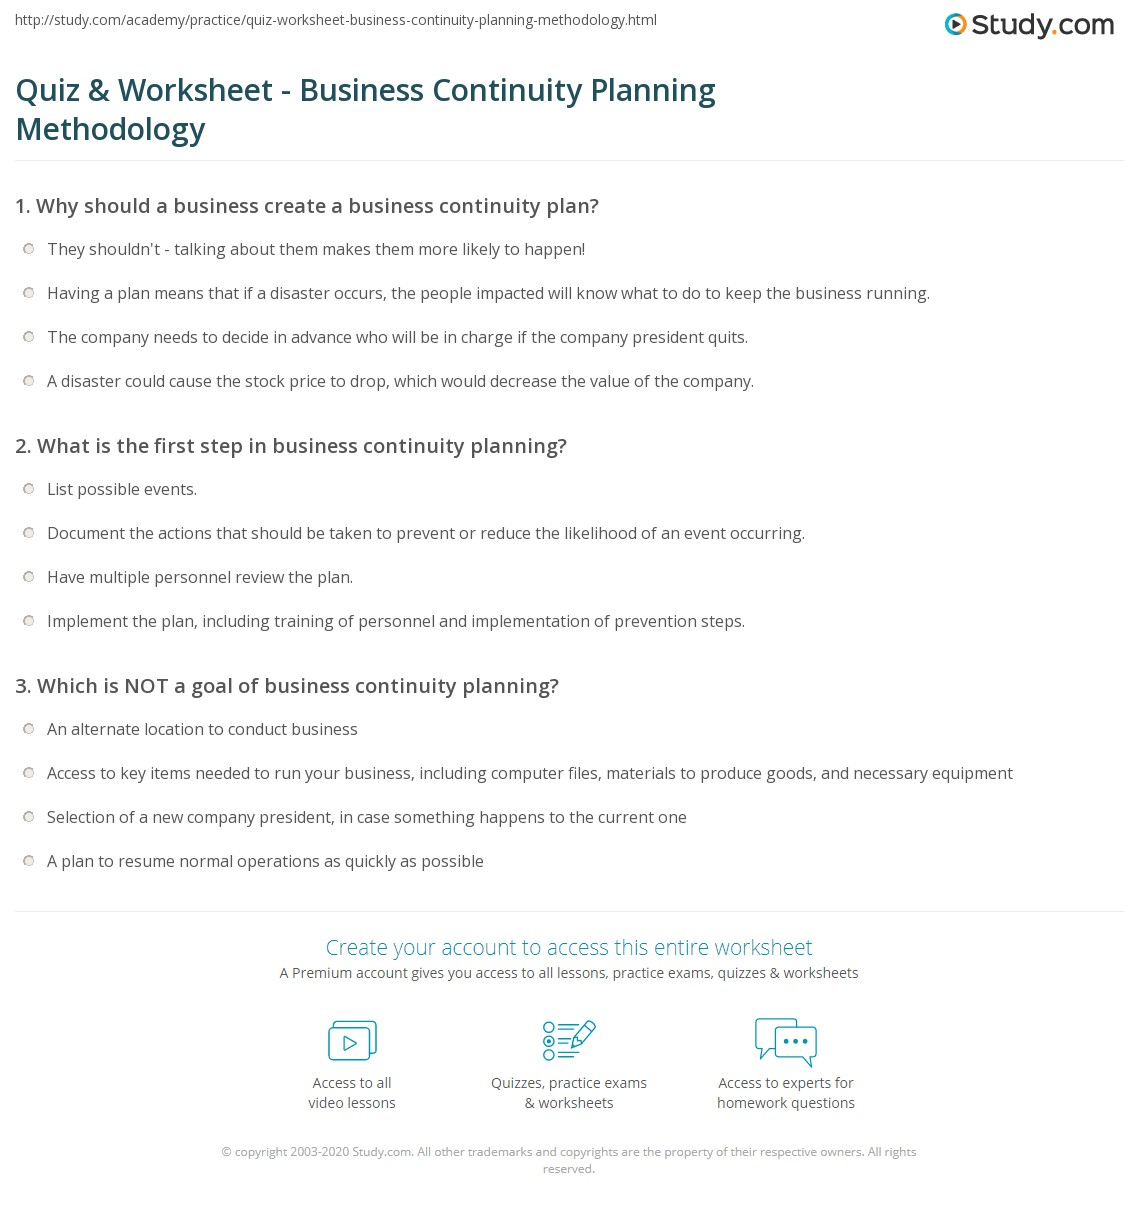 quiz worksheet business continuity planning methodology